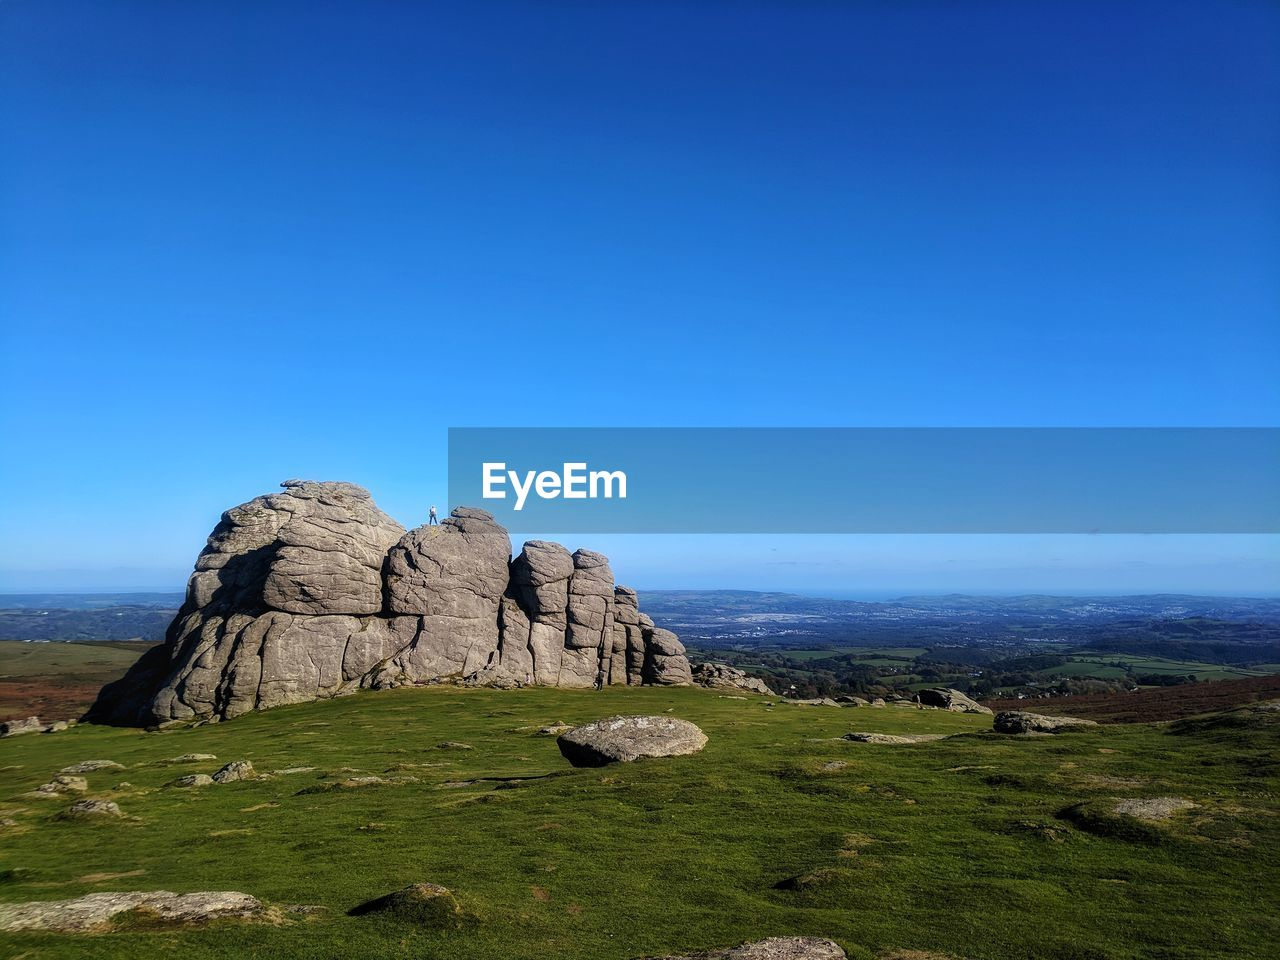 sky, rock, blue, scenics - nature, tranquil scene, rock - object, solid, beauty in nature, environment, tranquility, landscape, copy space, nature, grass, rock formation, clear sky, non-urban scene, plant, day, no people, outdoors, arid climate, eroded